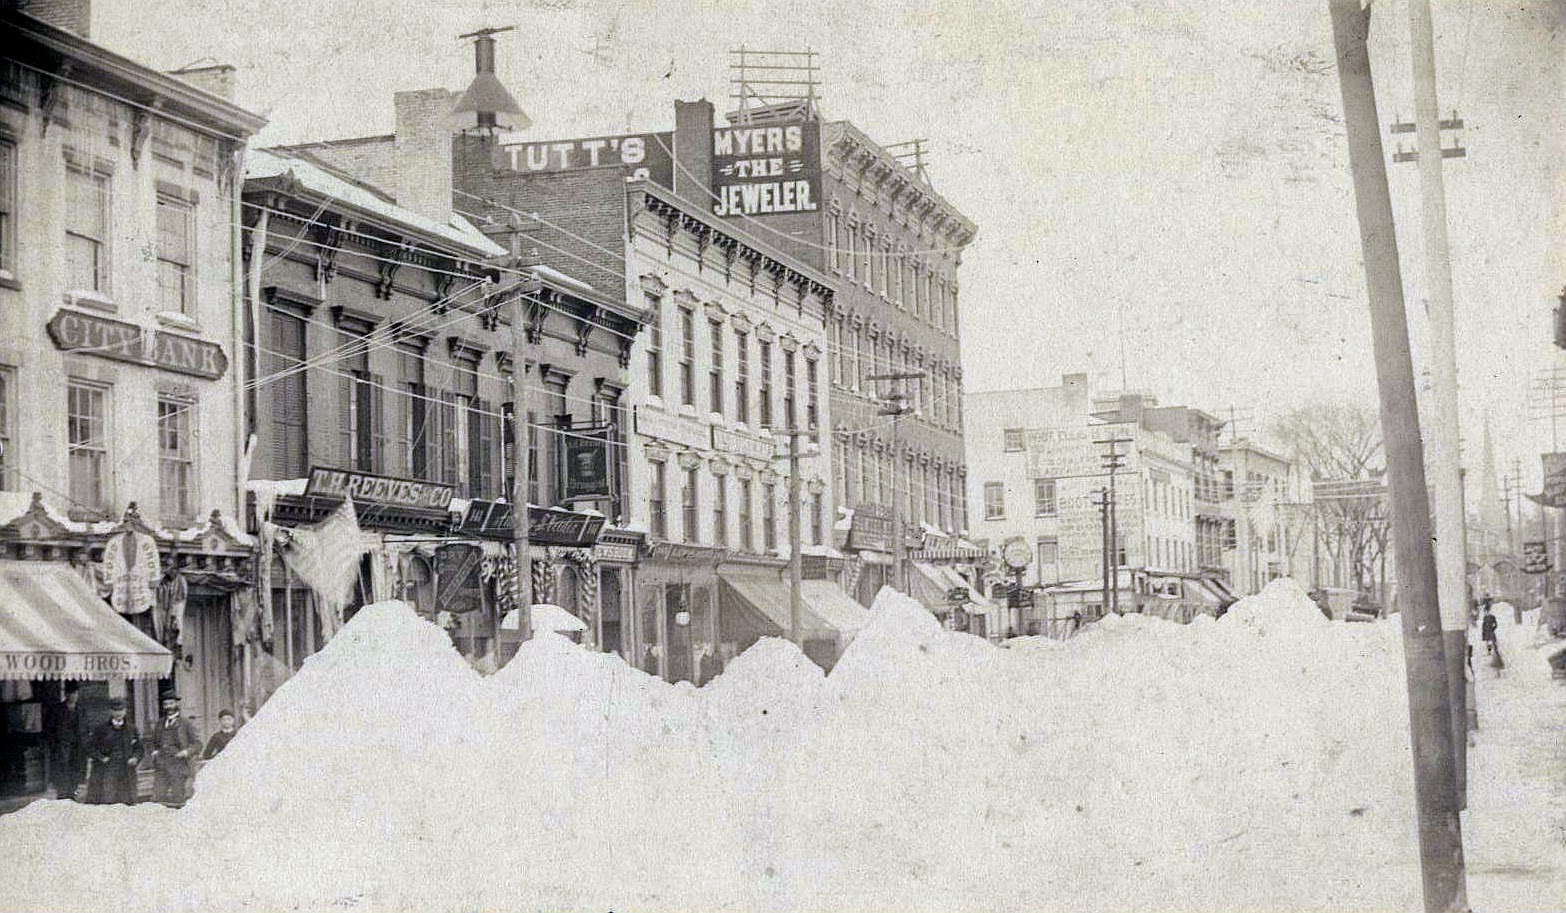 blizzard of 1888 The great blizzard of 1888 hammered the northeast, killing hundreds, isolating entire cities, and disabling telegraph lines and railroads.